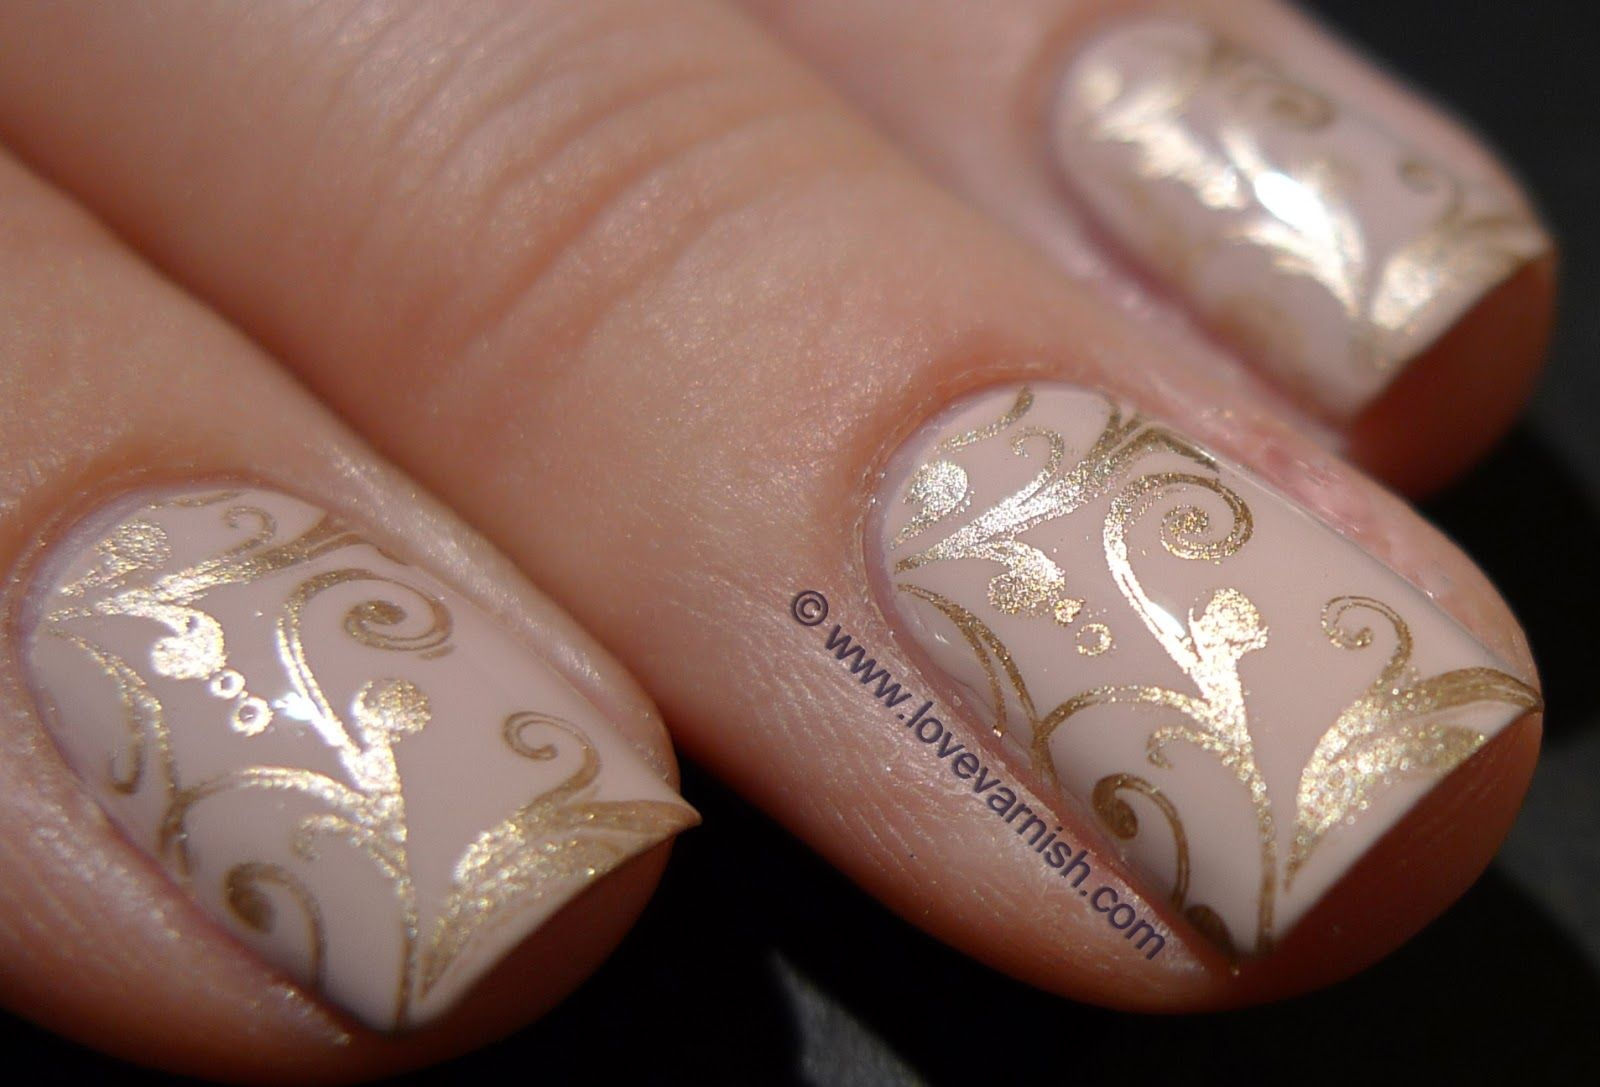 Sephora by opi xox betsey coats stamped with china glaze and